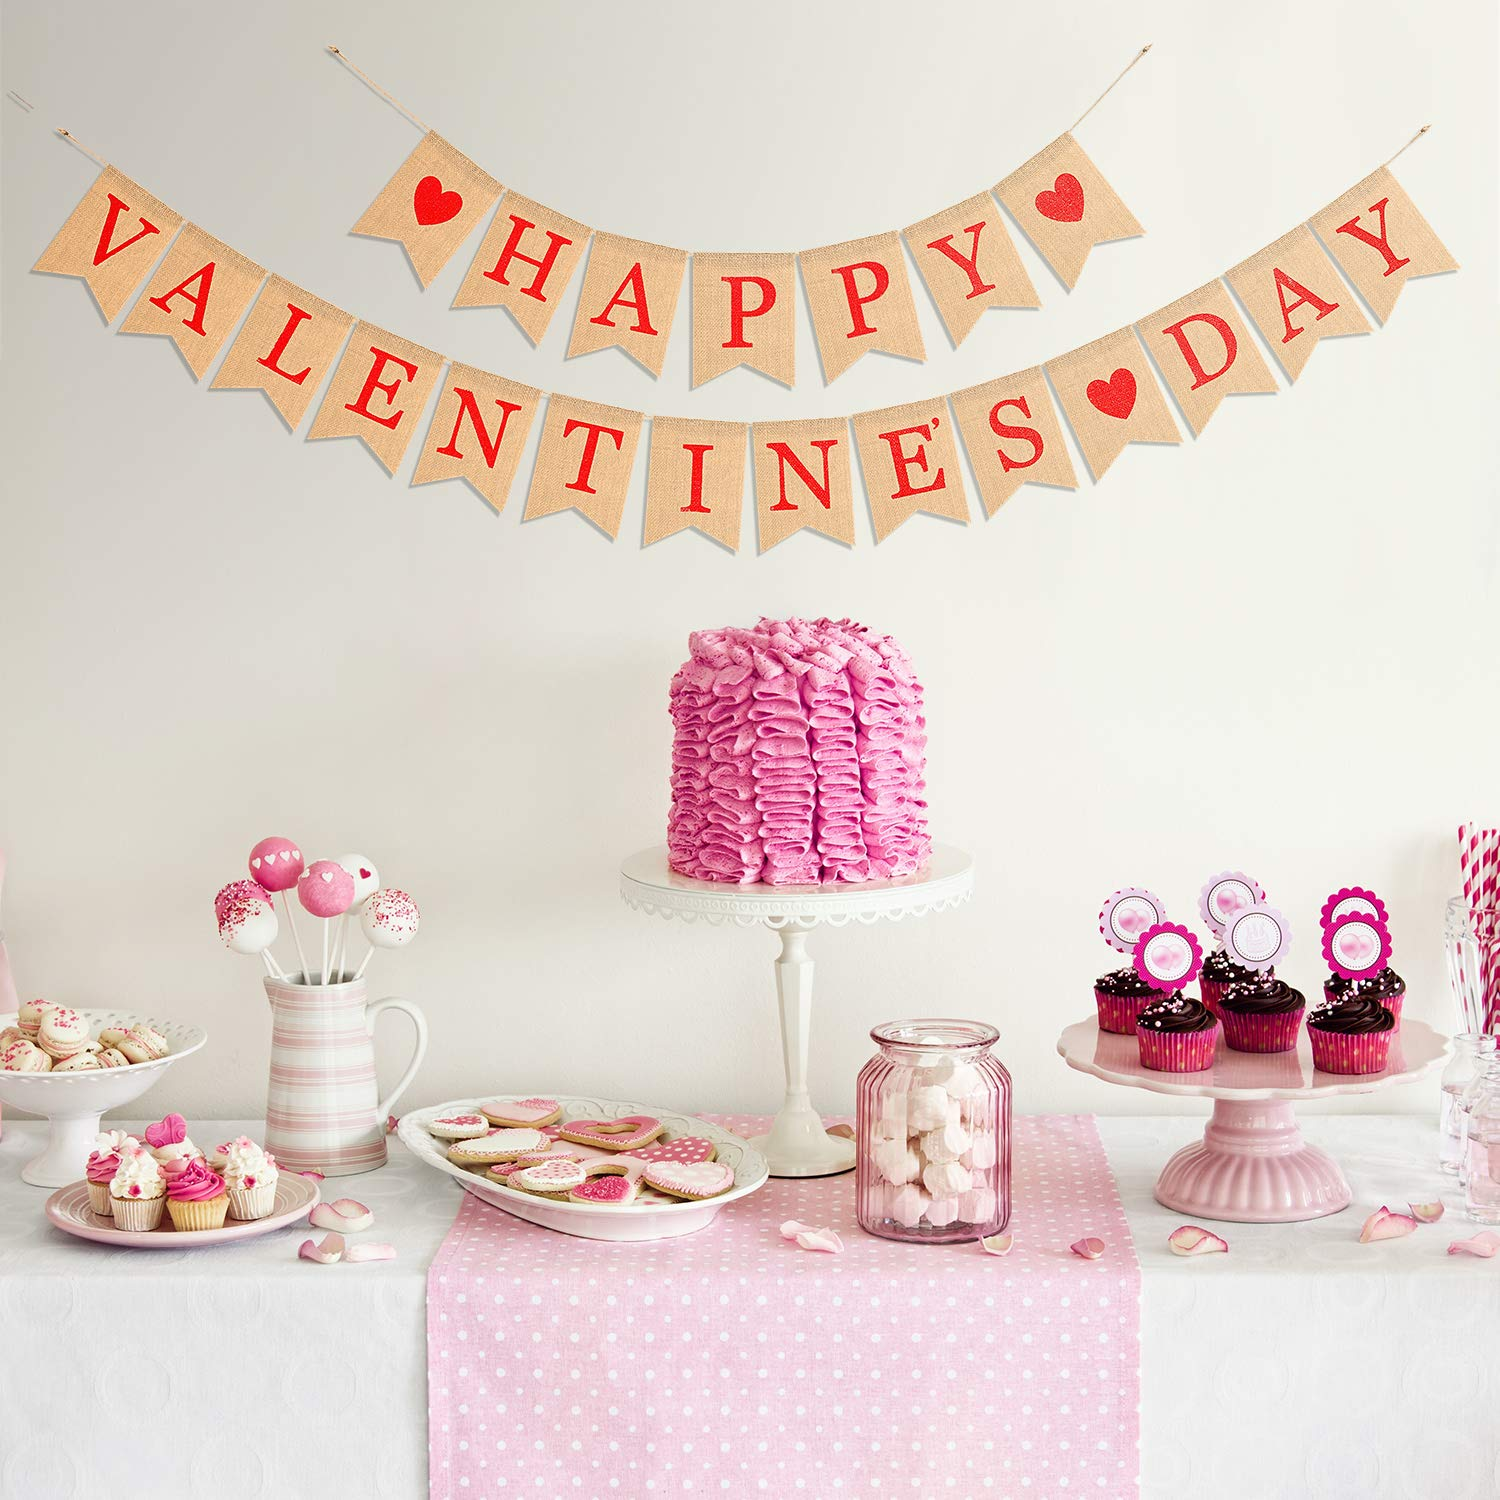 Boao Happy Valentines Day Banner Valentine Day Burlap Bunting Photo Props Valentine Day Heart Banner for Valentines Day Window and Door